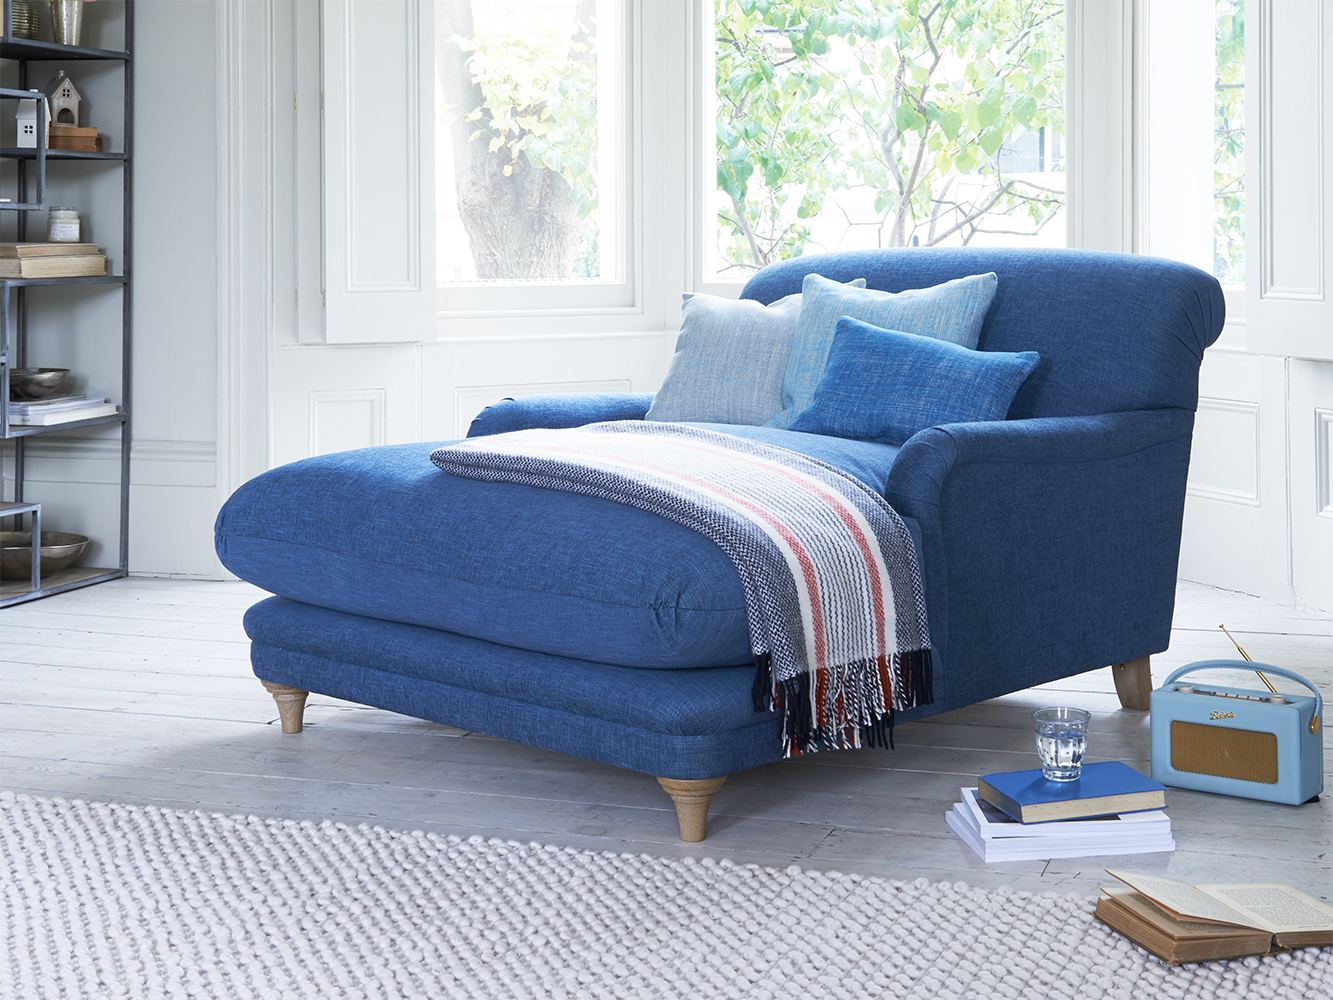 Astonishing Pudding Love Seat Chaise In Thatch House Fabric Squirreltailoven Fun Painted Chair Ideas Images Squirreltailovenorg